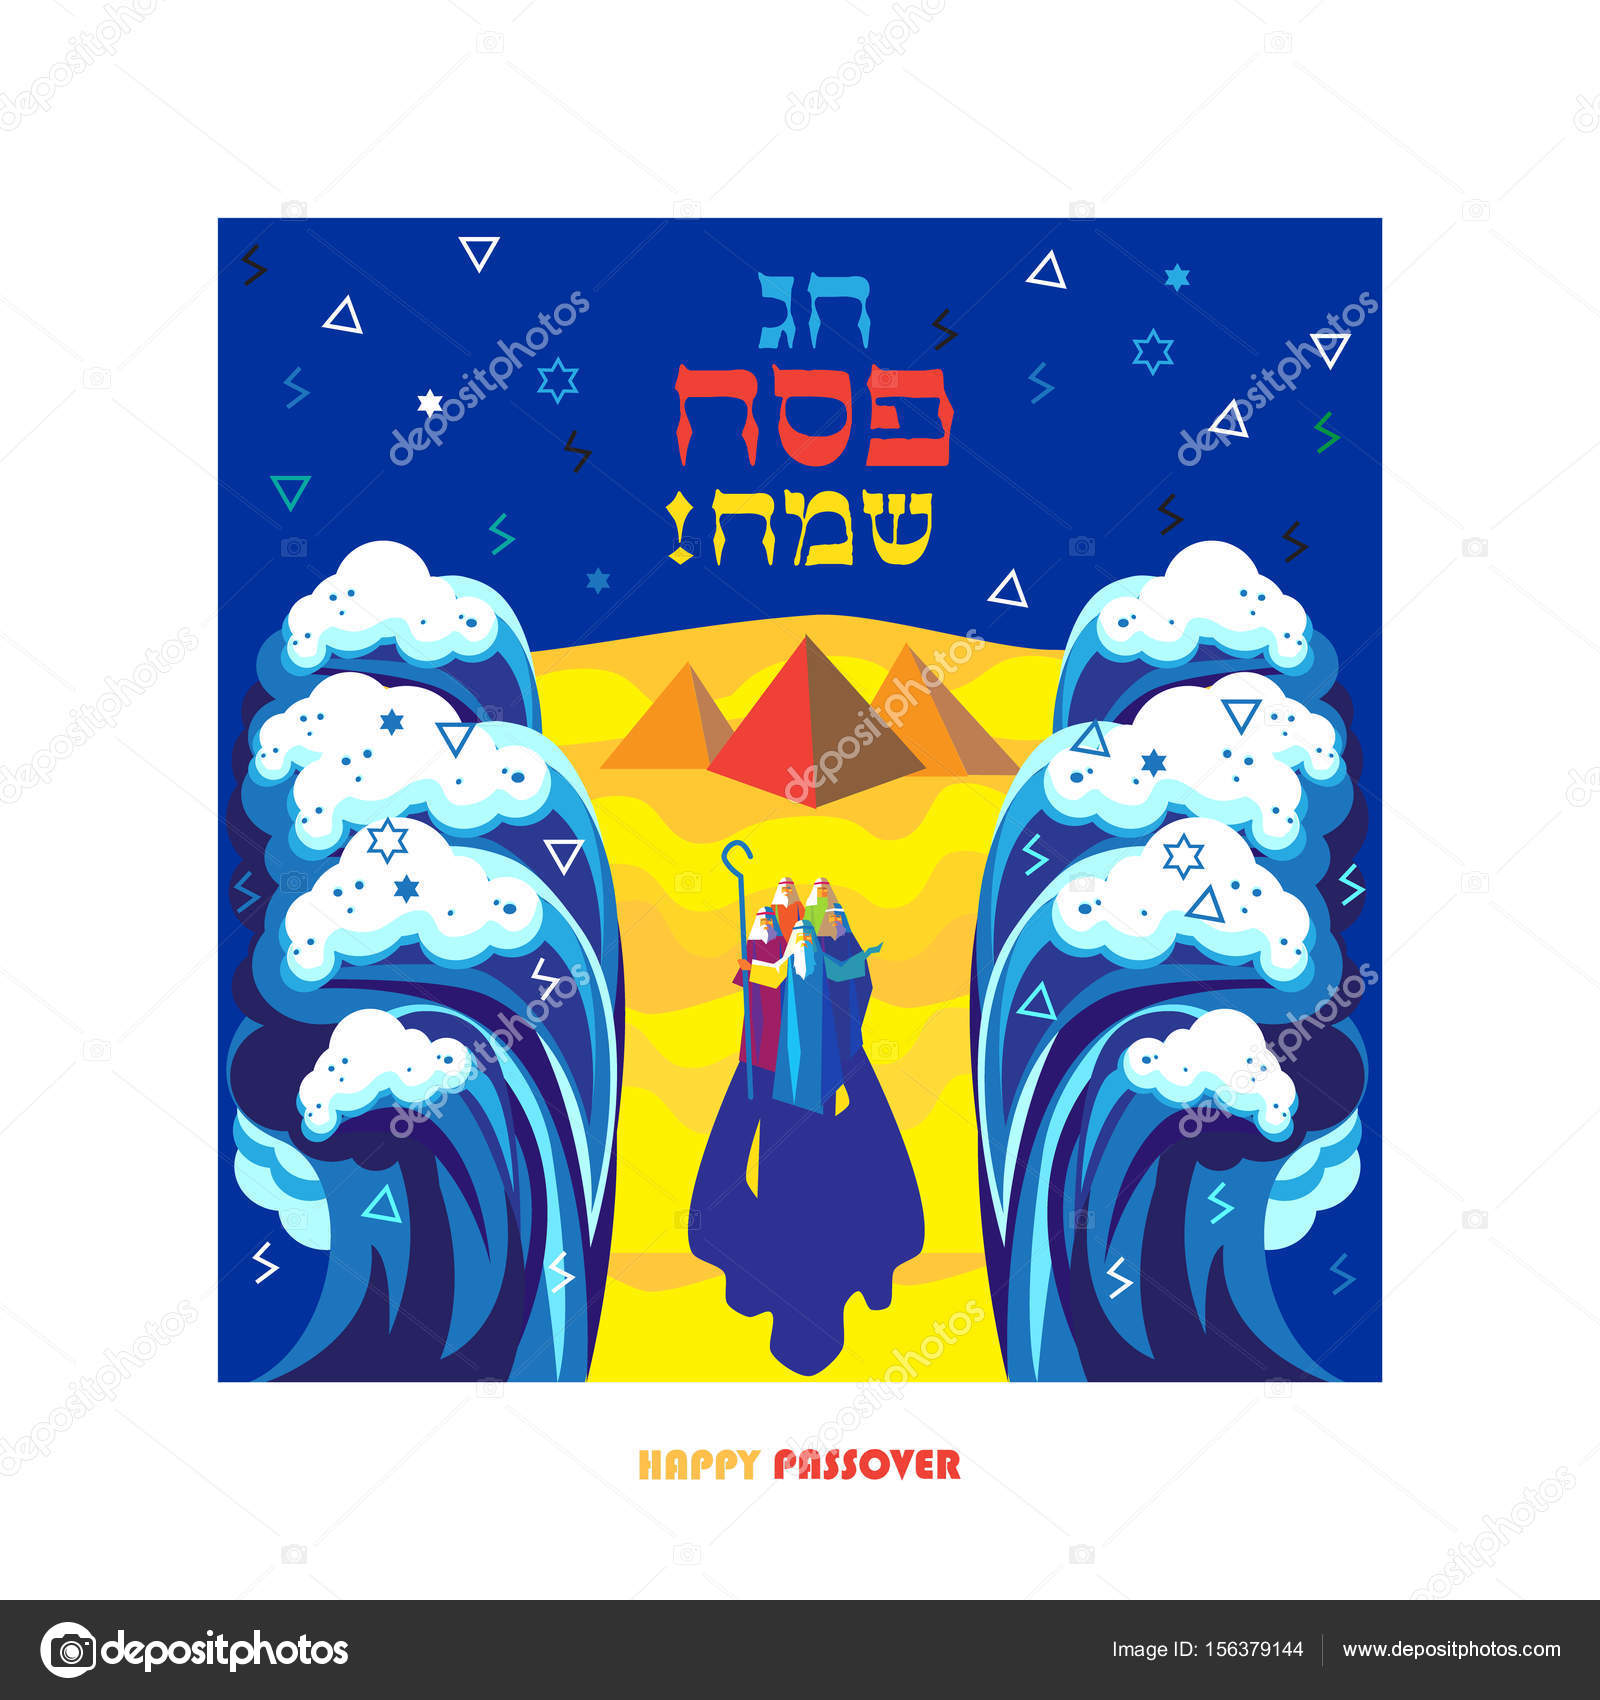 happy passover jewish holiday background vector illustration with